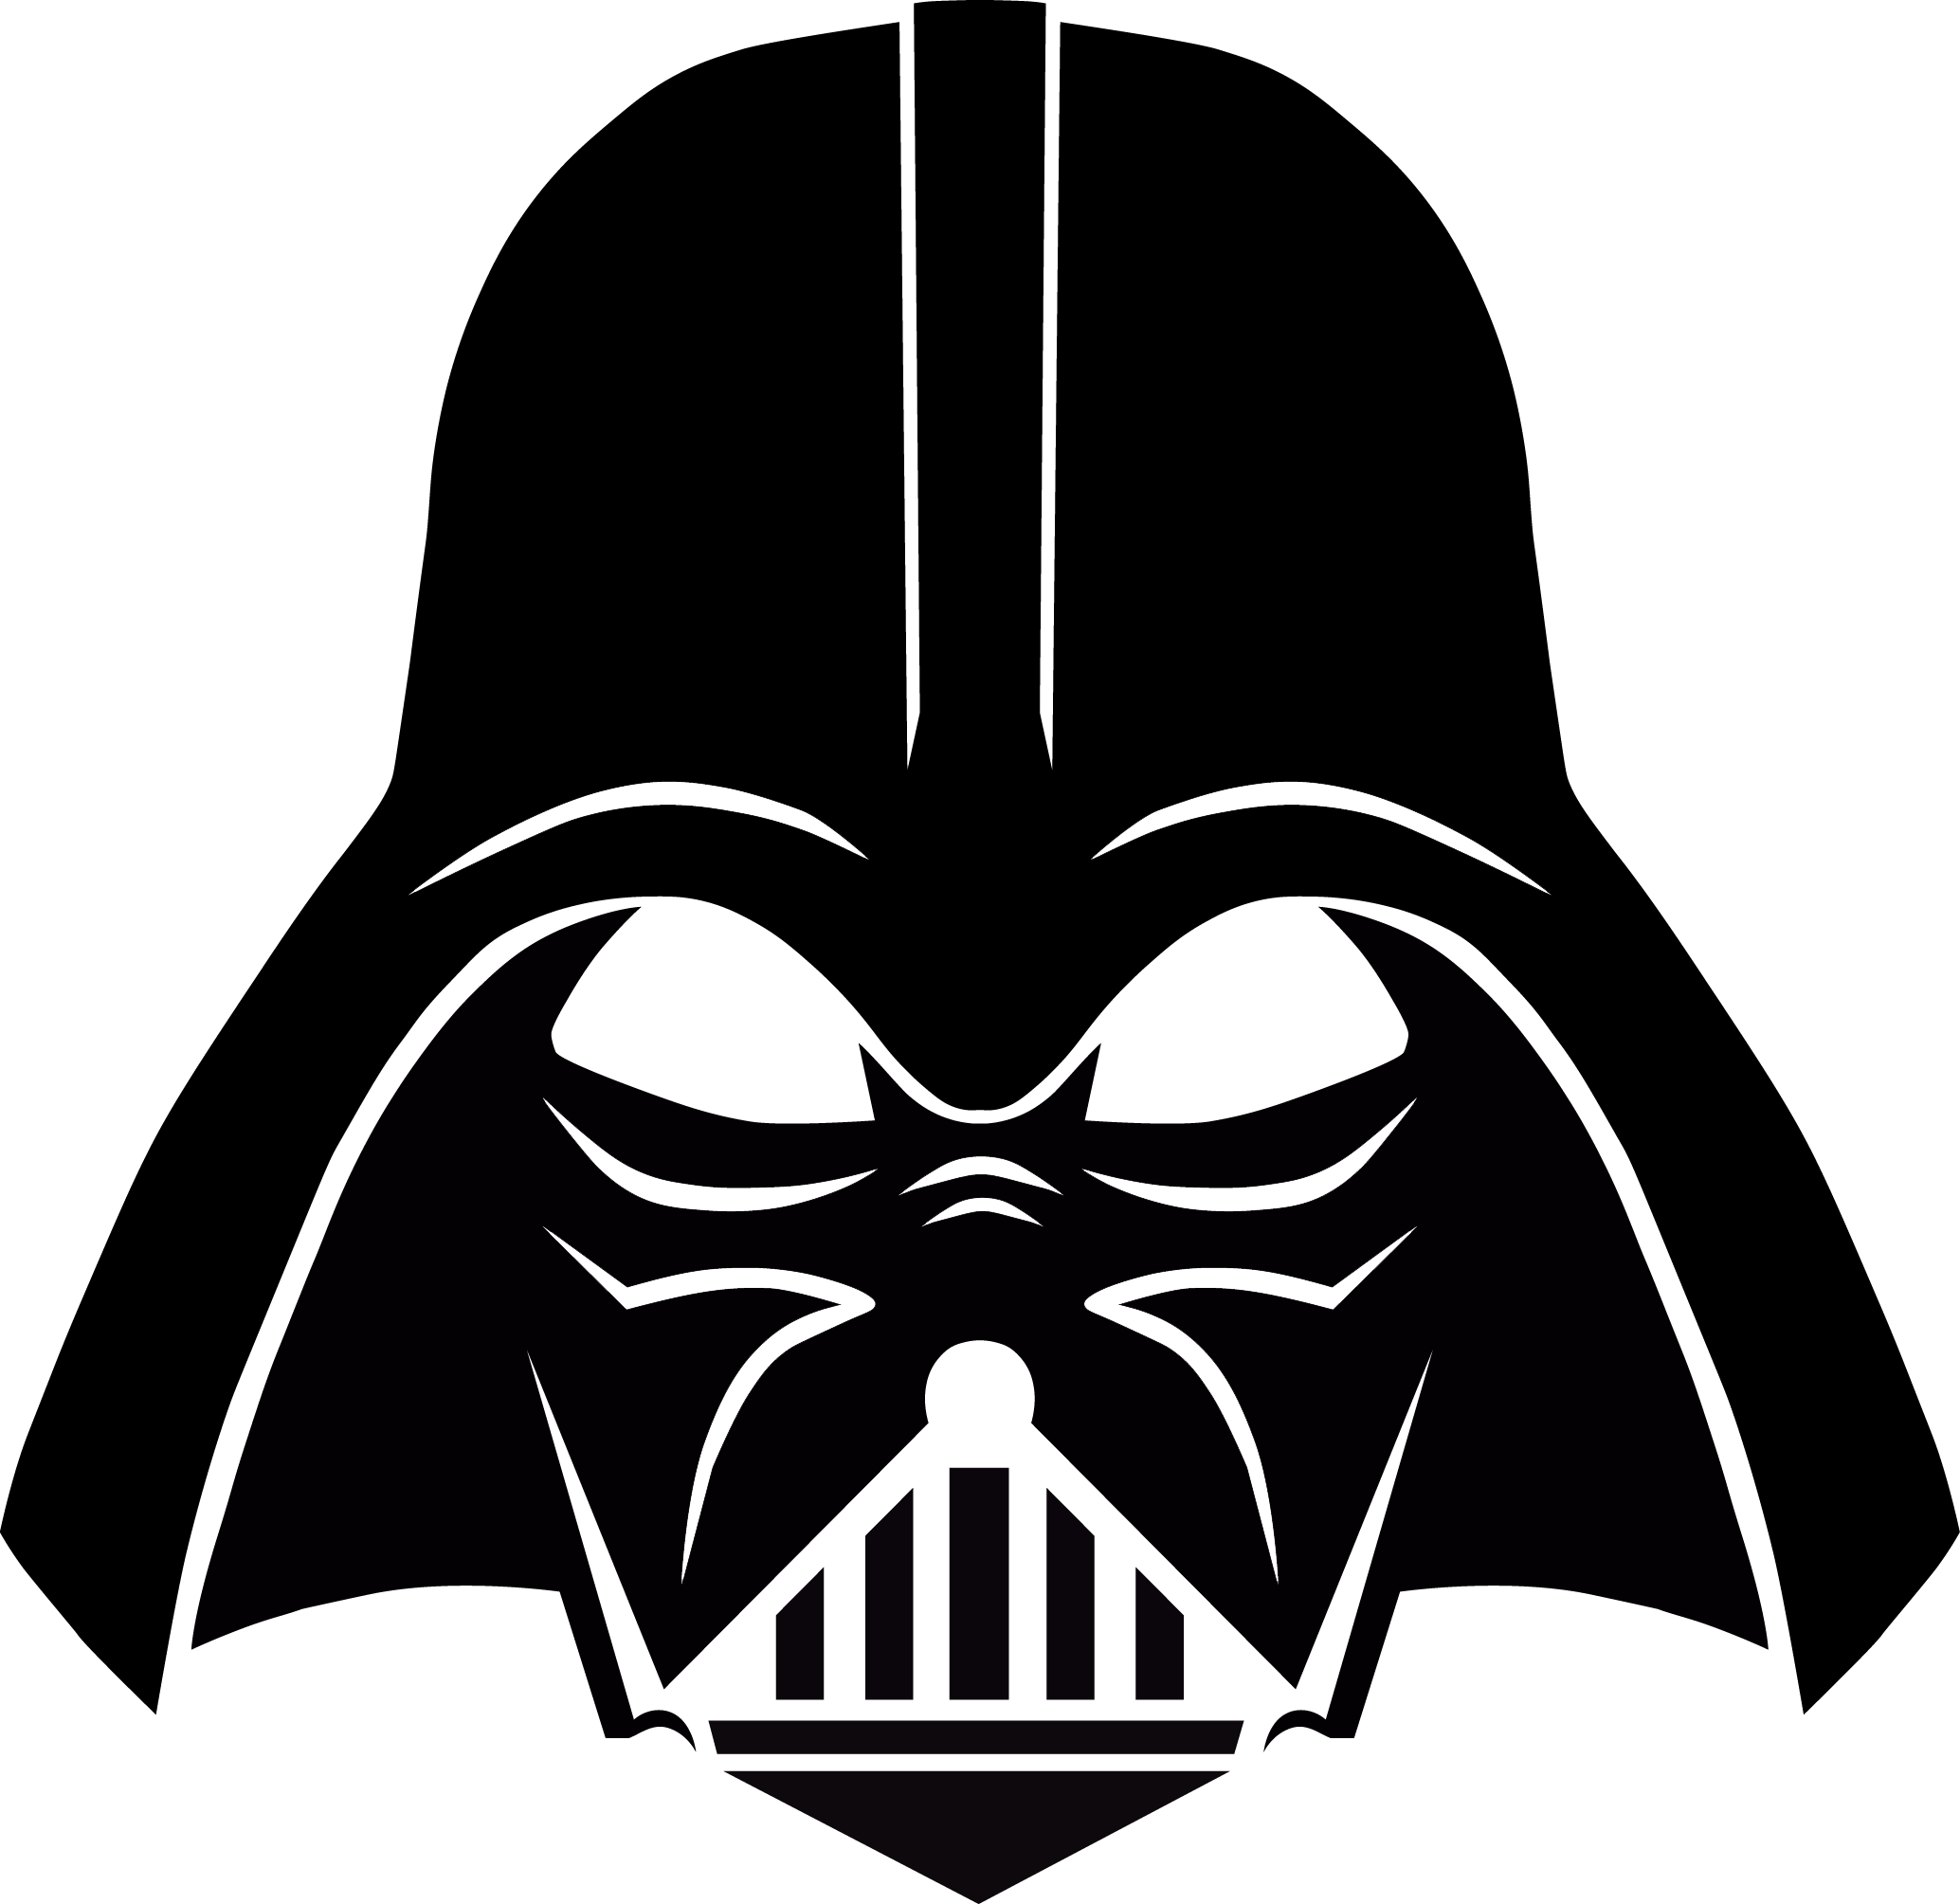 Star wars head clipart jpg royalty free library Darth Vader PNG Image - PurePNG | Free transparent CC0 PNG Image Library jpg royalty free library